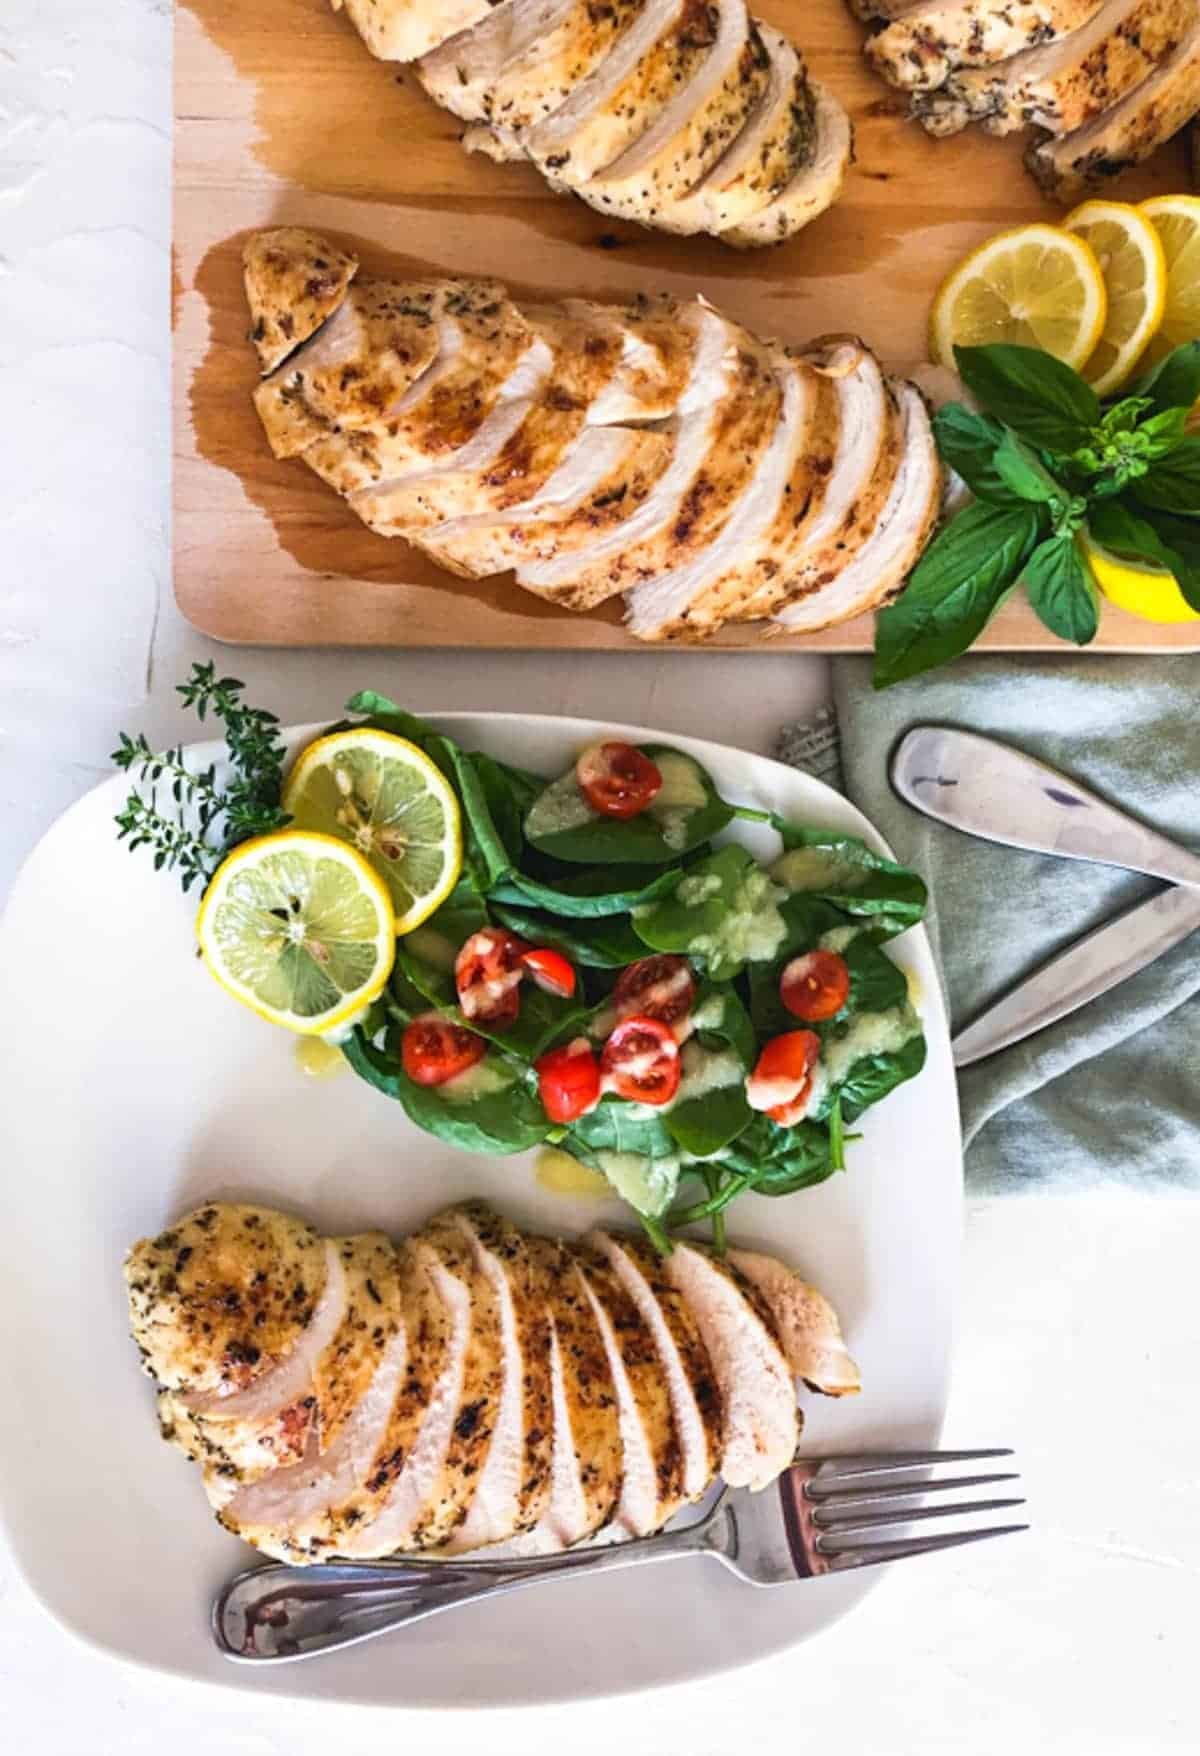 Sous vide chicken breast served with a side salad